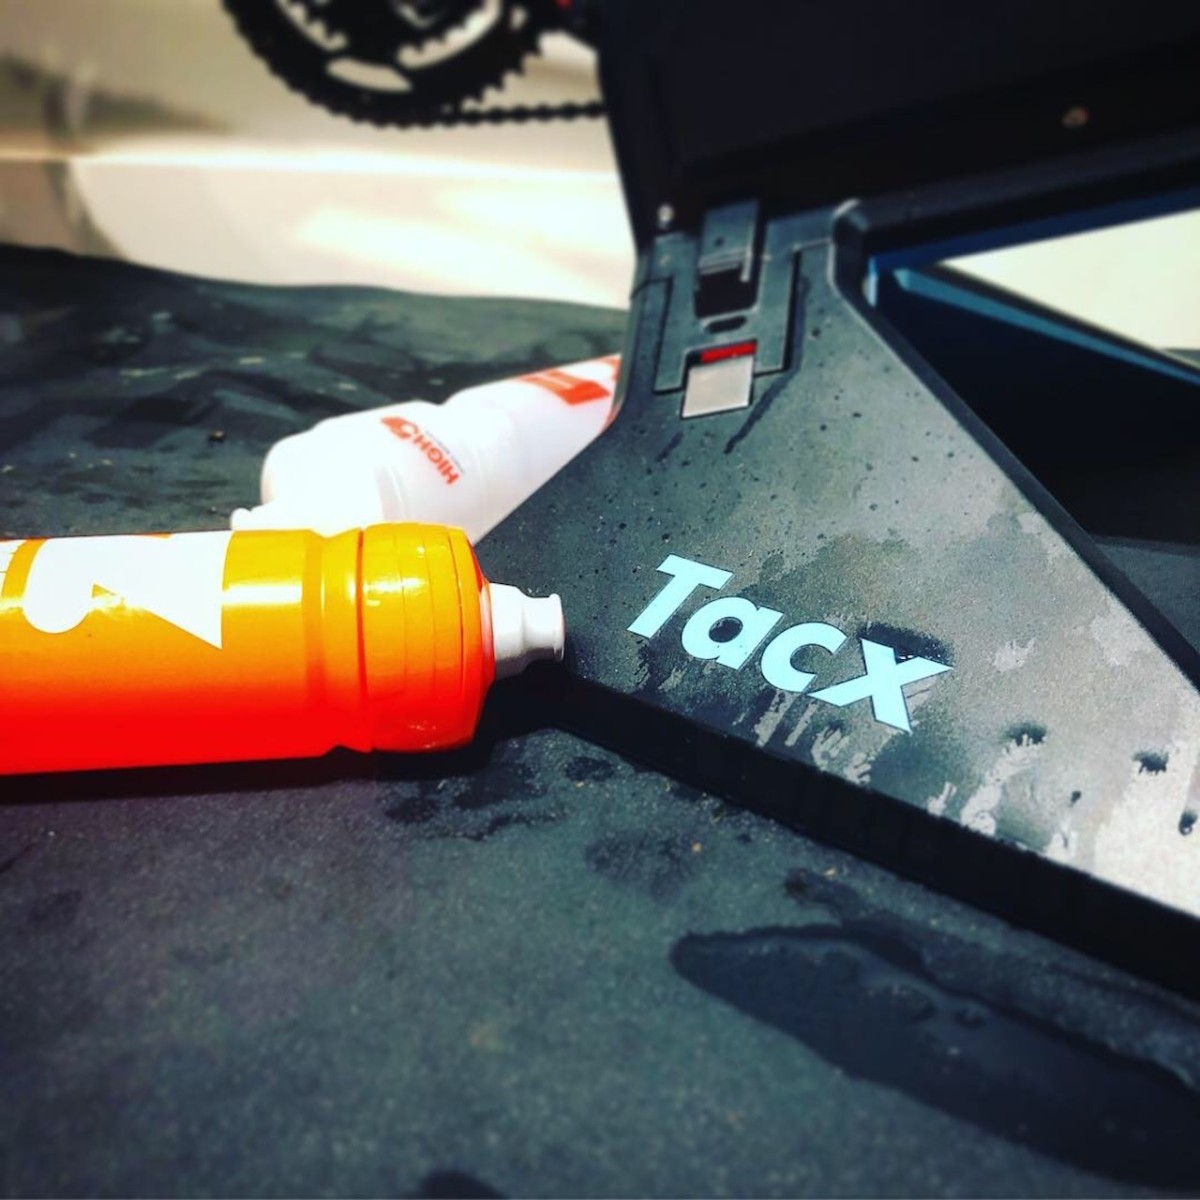 TitaniumGeek IMG 6019 Tacx NEO 2 Smart Trainer & Tacx NEO Smartbike ​  Preview Cycling Gear Reviews Smart Trainers Zwift  Zwift TacX Neo Tacx Smart trainer smart bike cycling   Image of IMG 6019